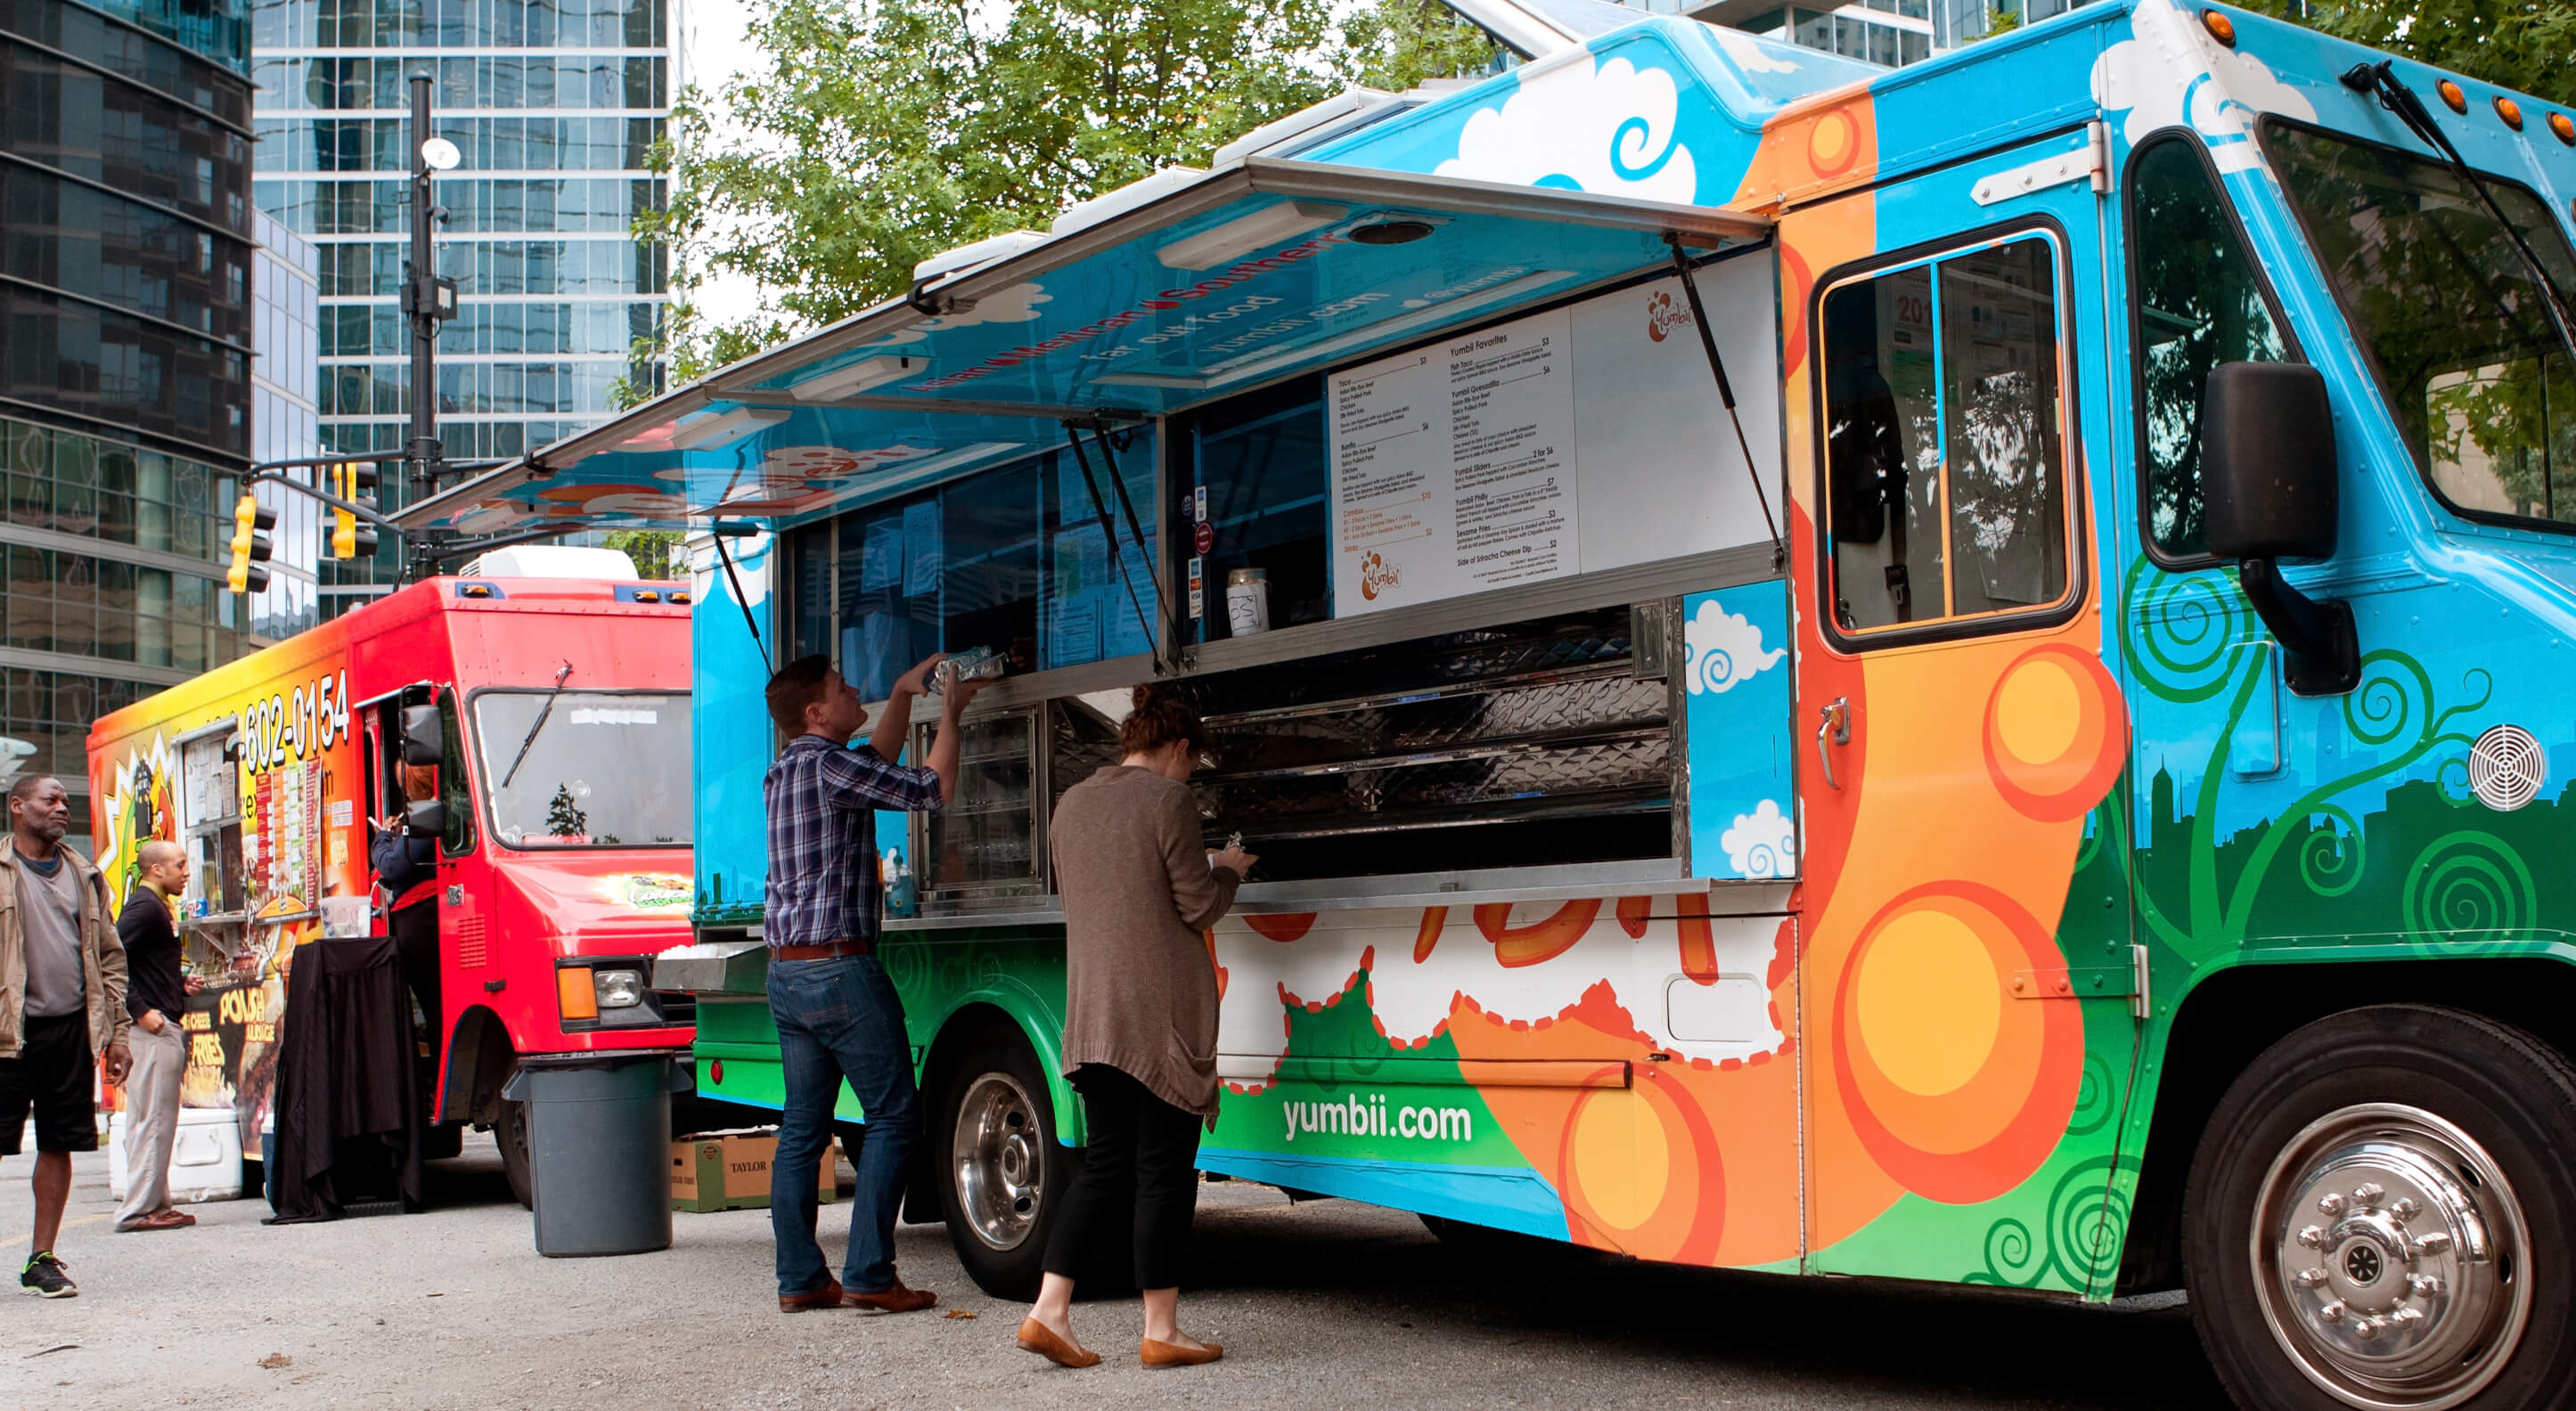 two colorful food trucks in a city center